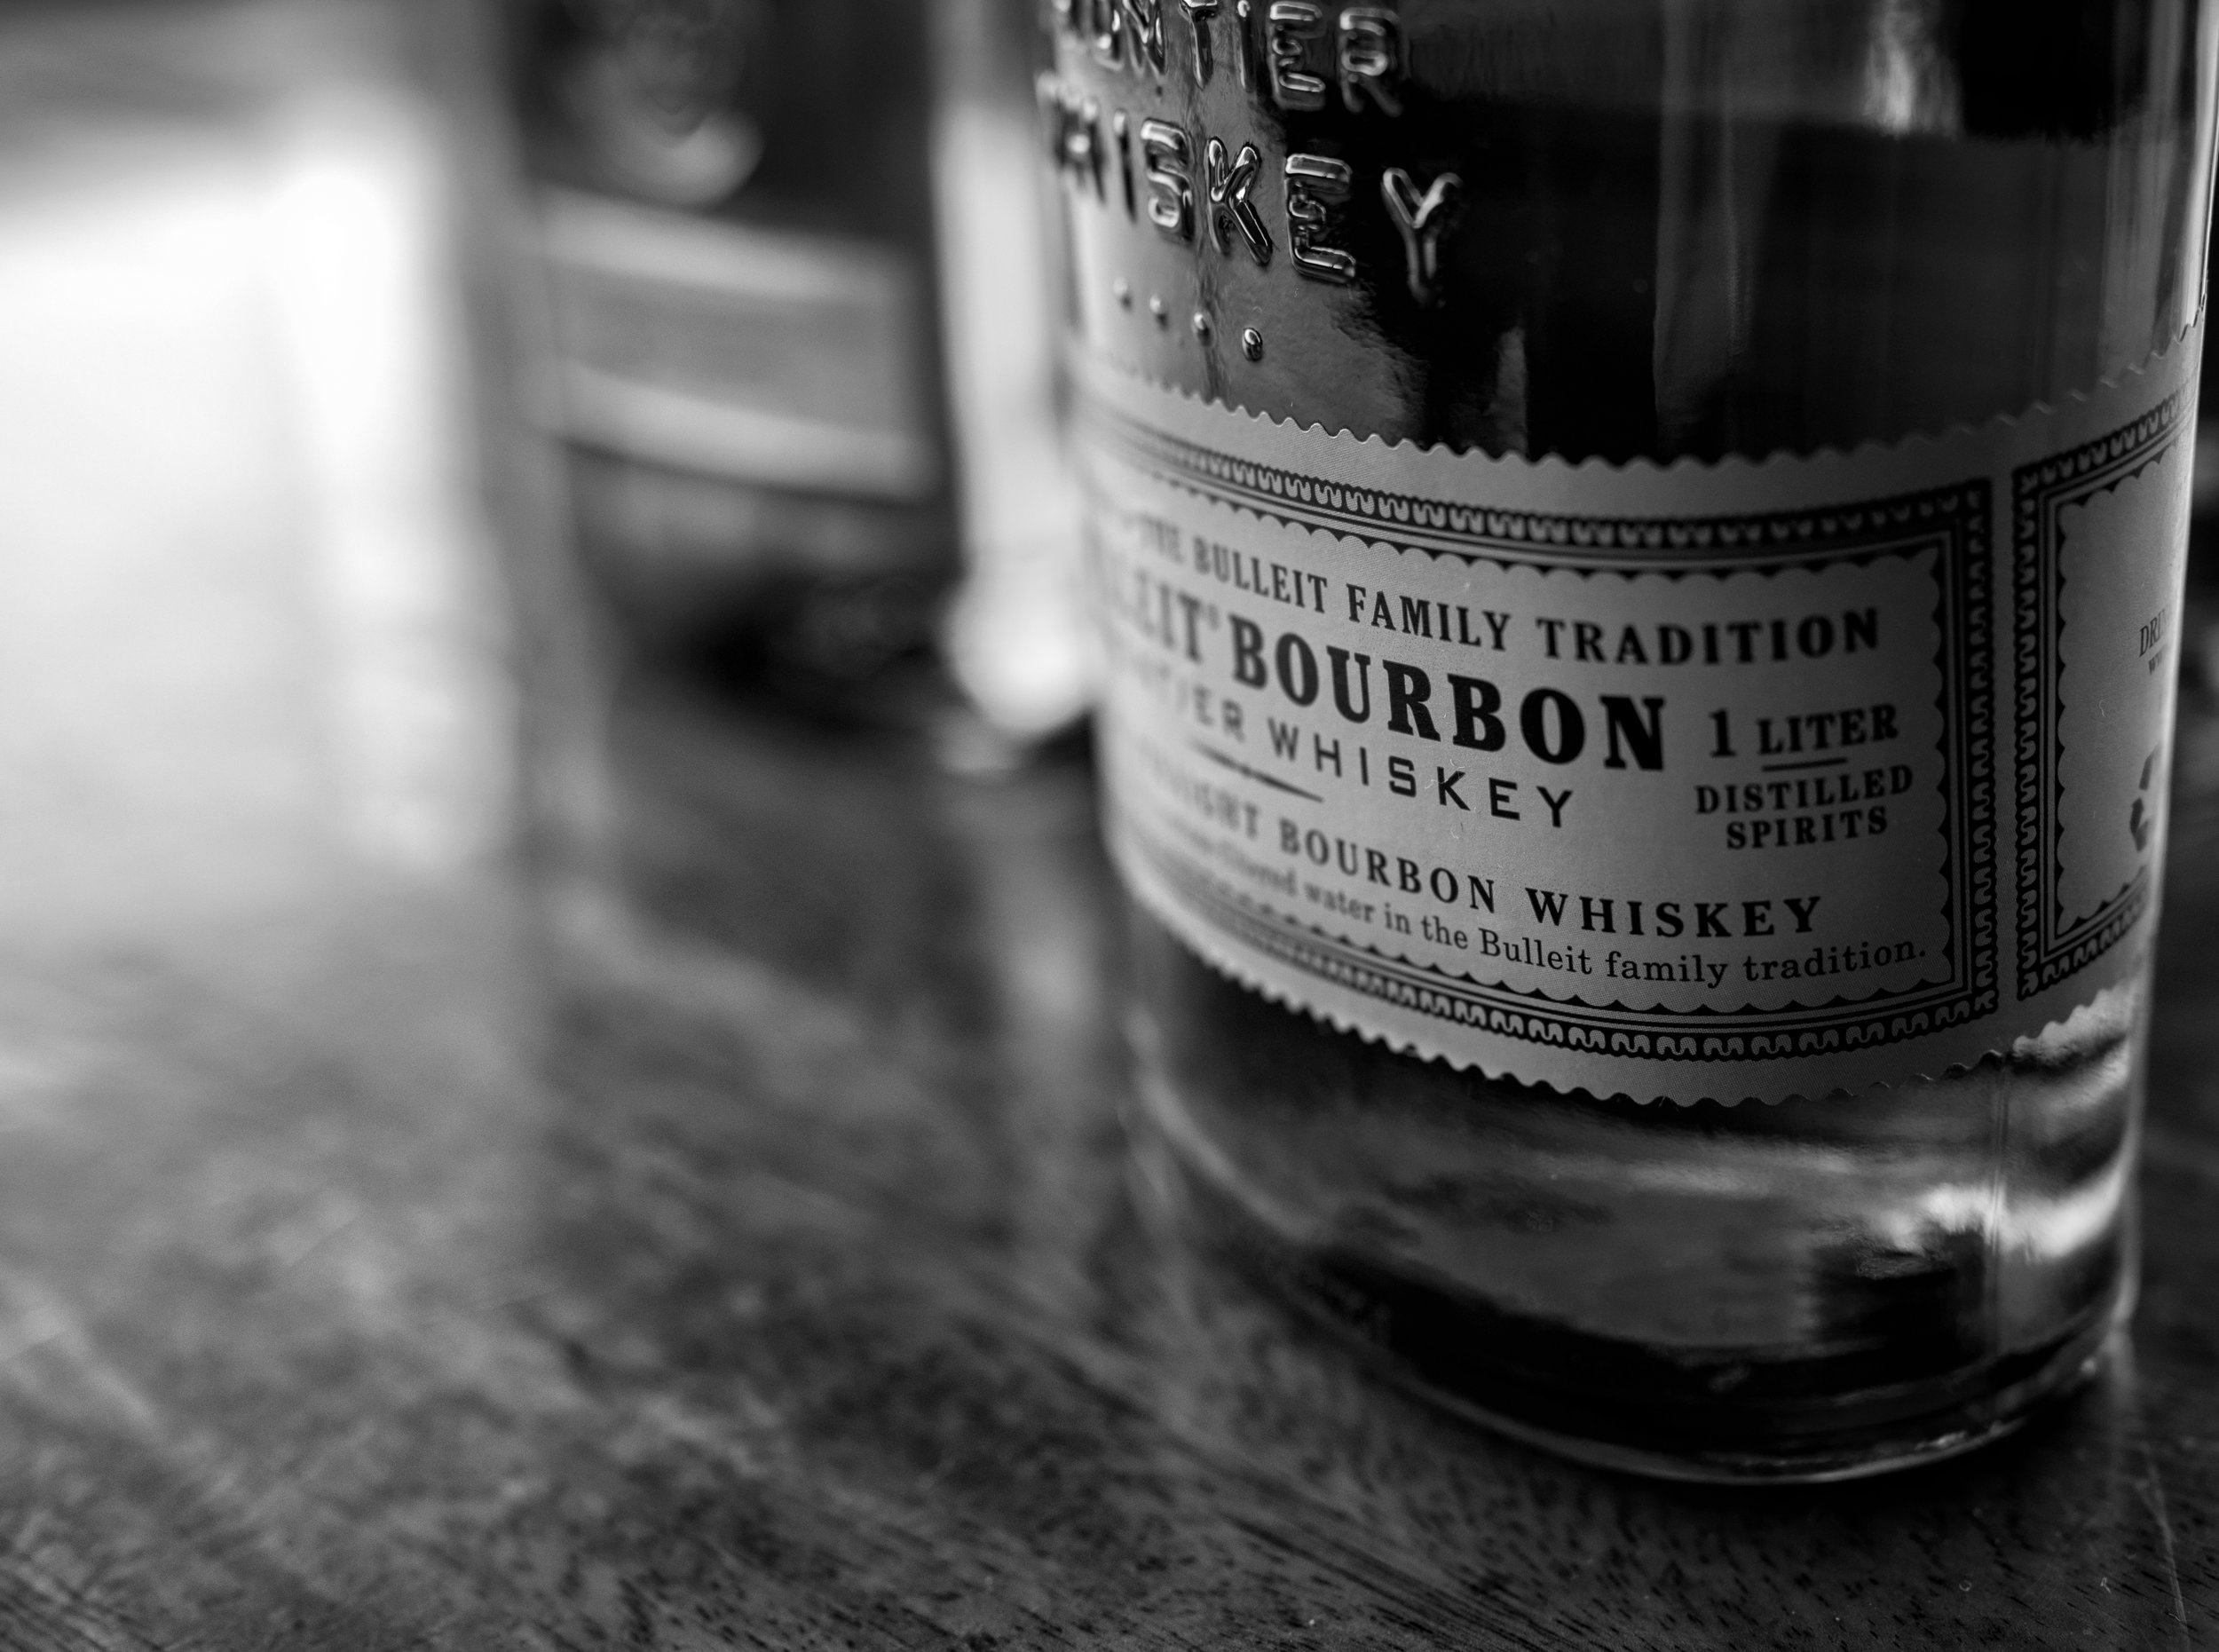 Musings by the Glass - Autumn Whiskey Primer - Black and White Bulleit Bourbon Whiskey